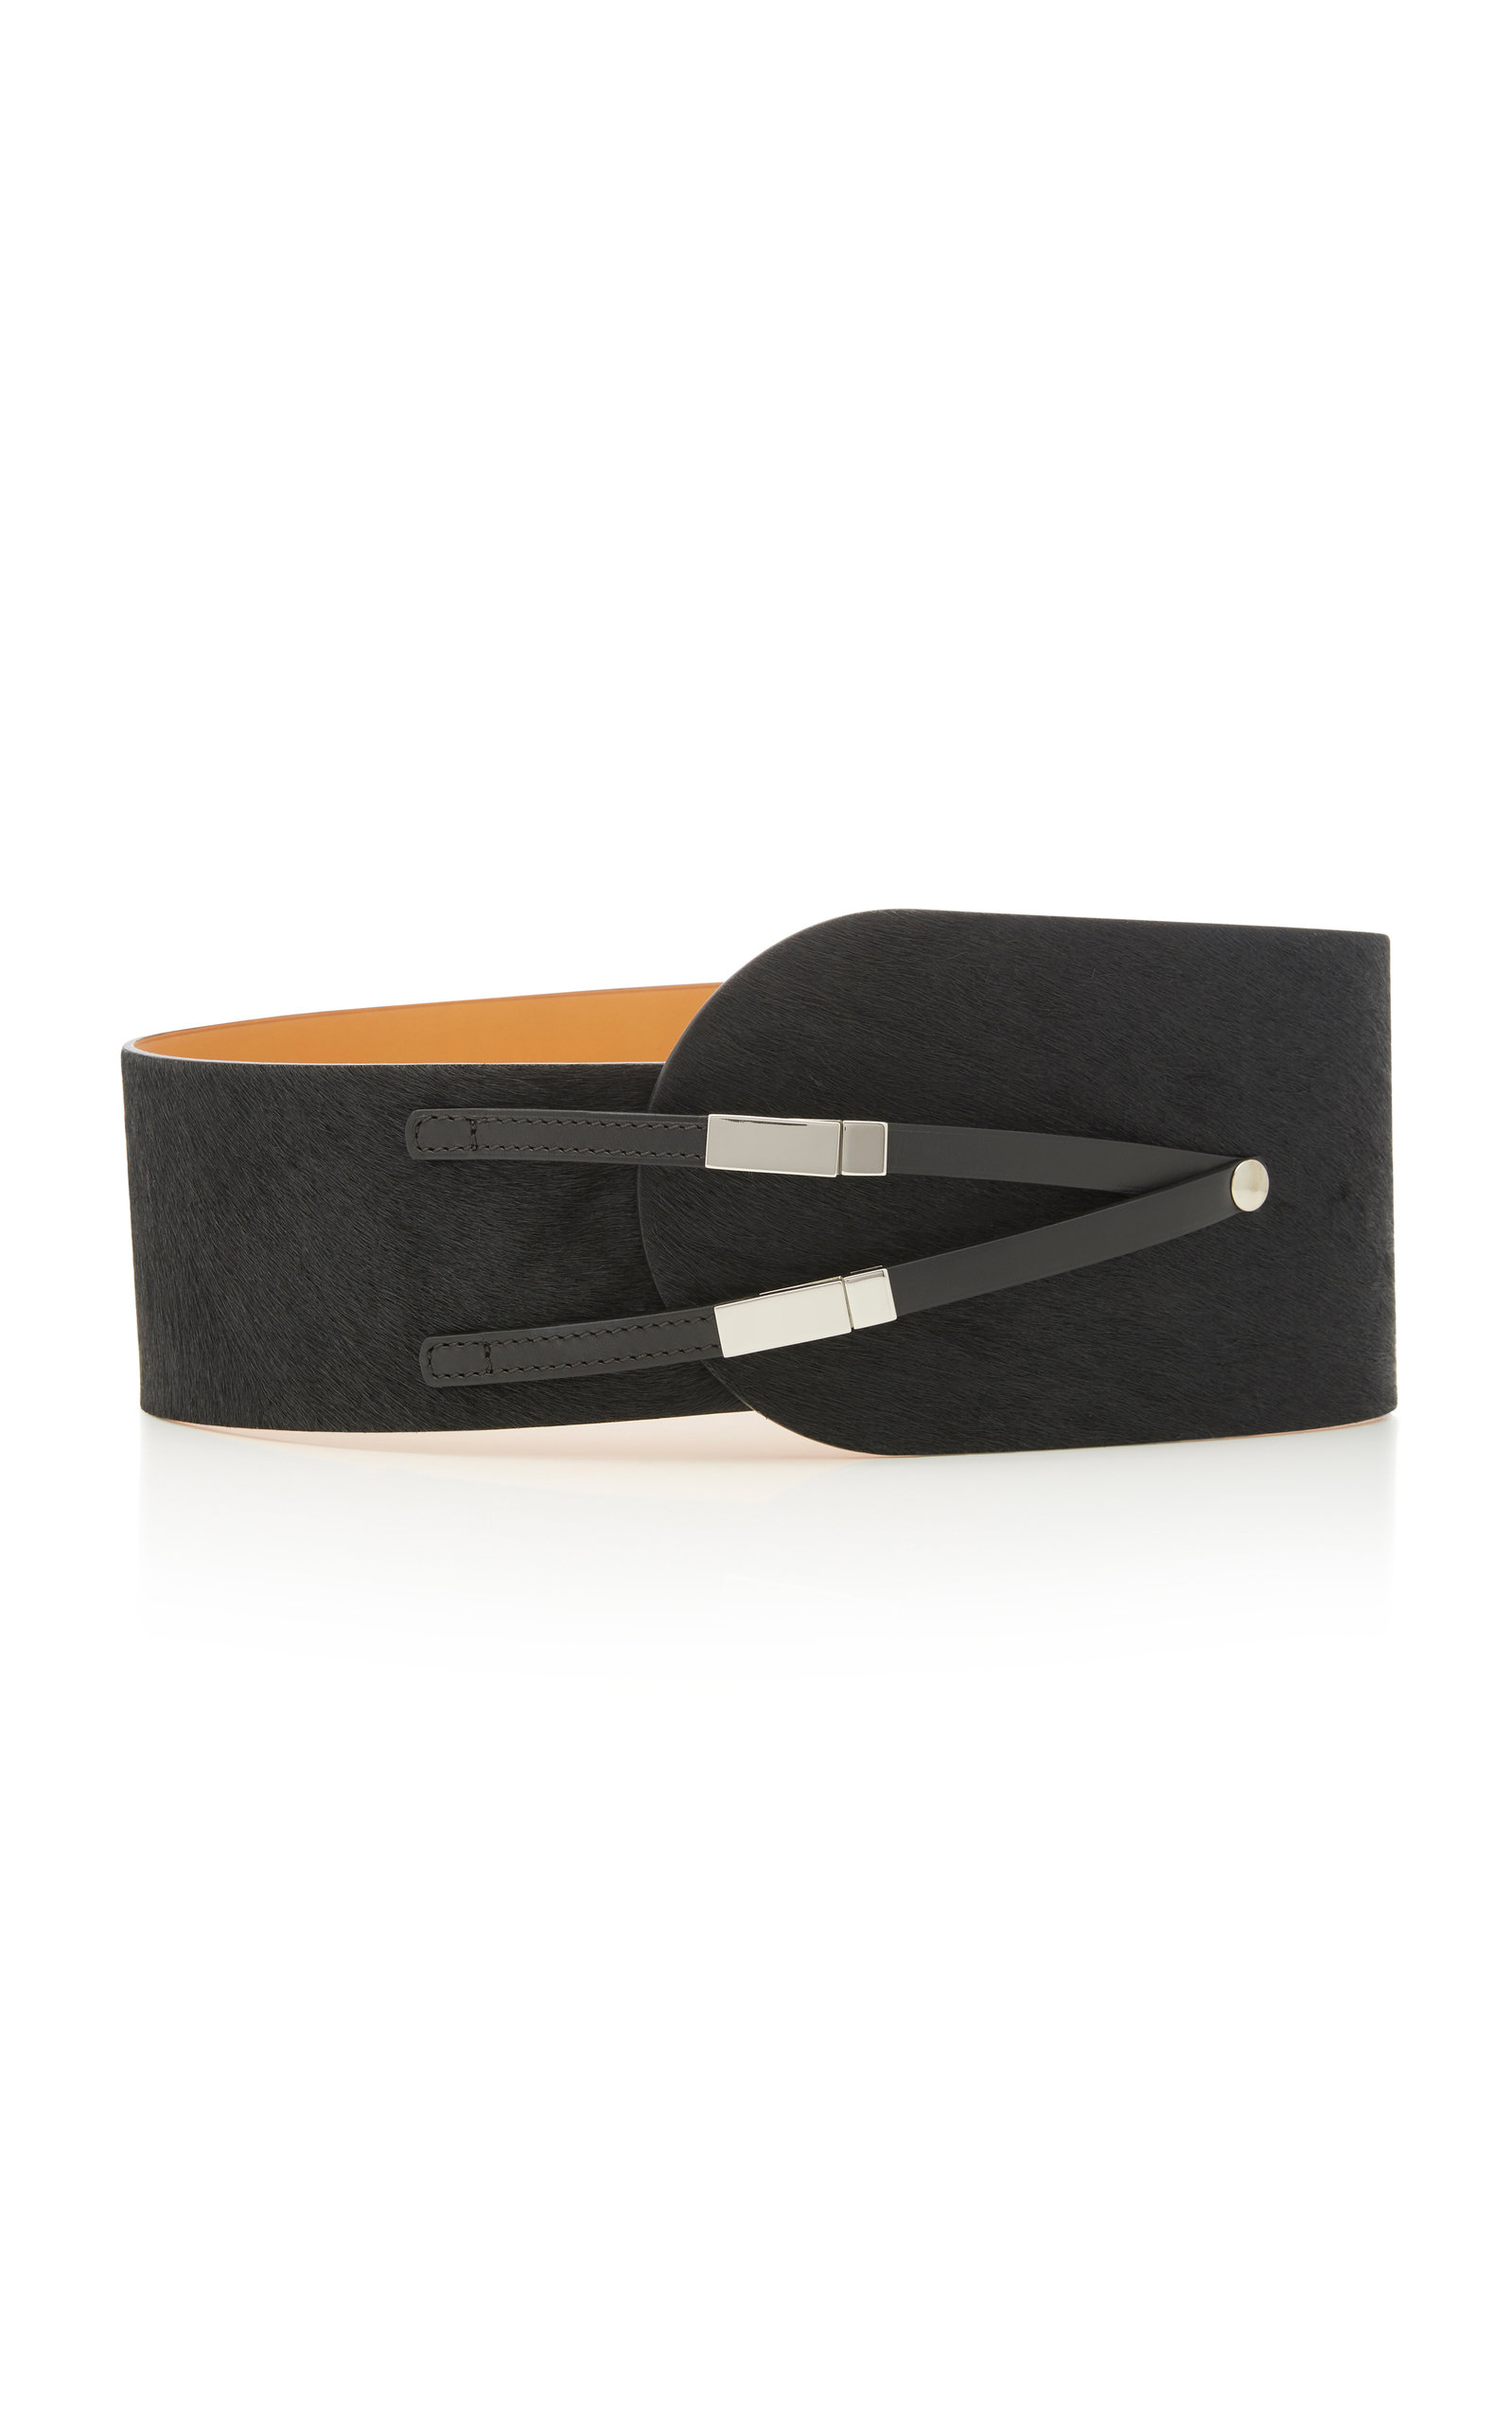 MAISON VAINCOURT Leather-Trimmed Calf-Hair Belt in Black